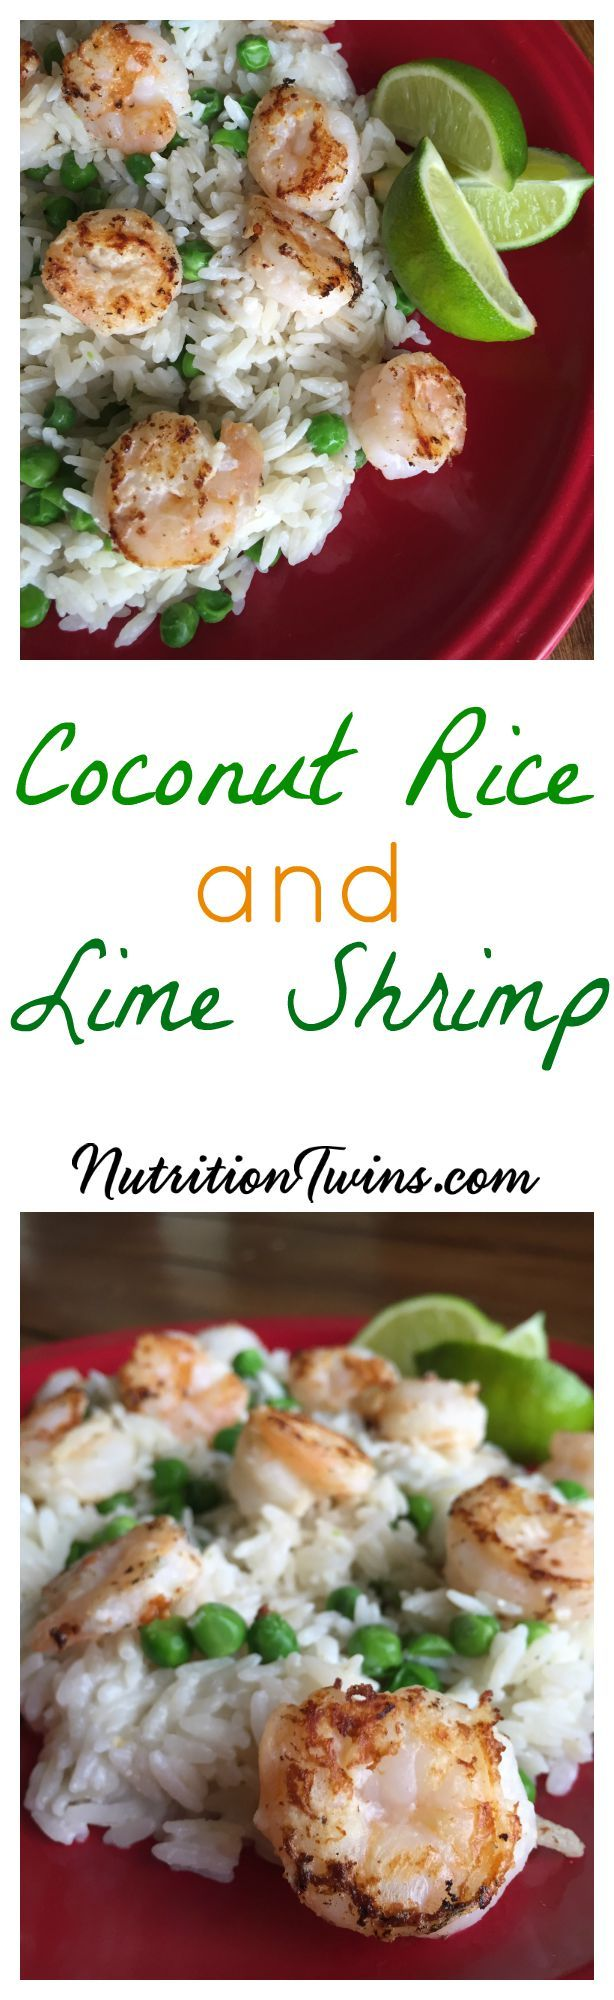 Lime Shrimp with Coconut Rice Only 315 Calories| Sweet & Creamy Rice, Succulent Shrimp | For Nutrition & Fitness Tips & RECIPES please SIGN UP for our FREE NEWSLETTER www.NutritionTwins.com